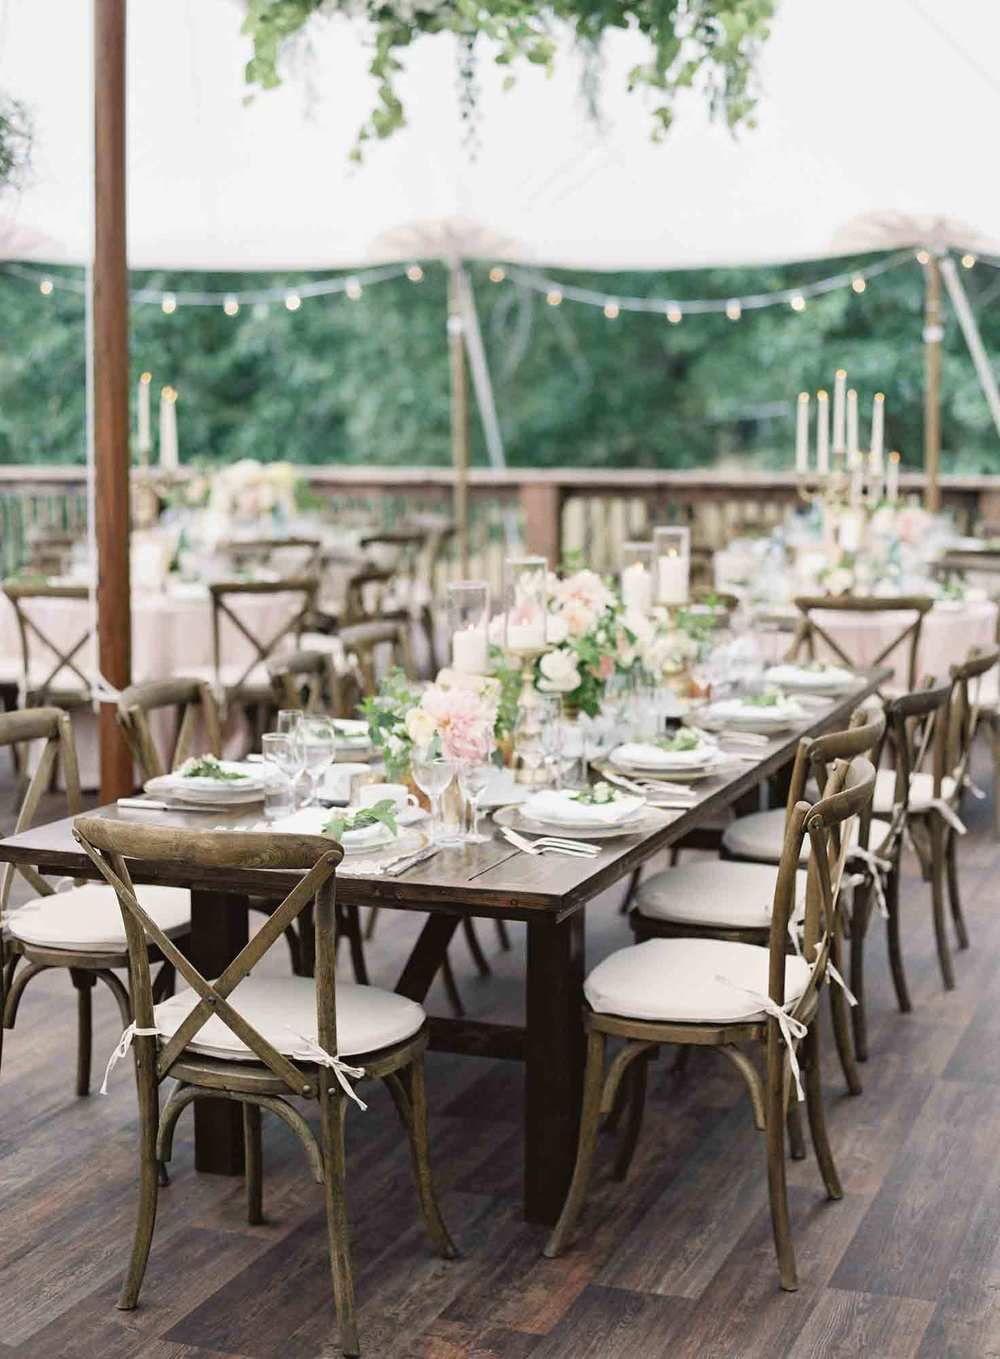 10 Foot Barnwood Banquet Tables From Seattle Farm Tables In Stylish Outdoor Wedding Table Rentals In Farm Table Wedding Wedding Event Planning Event Planning